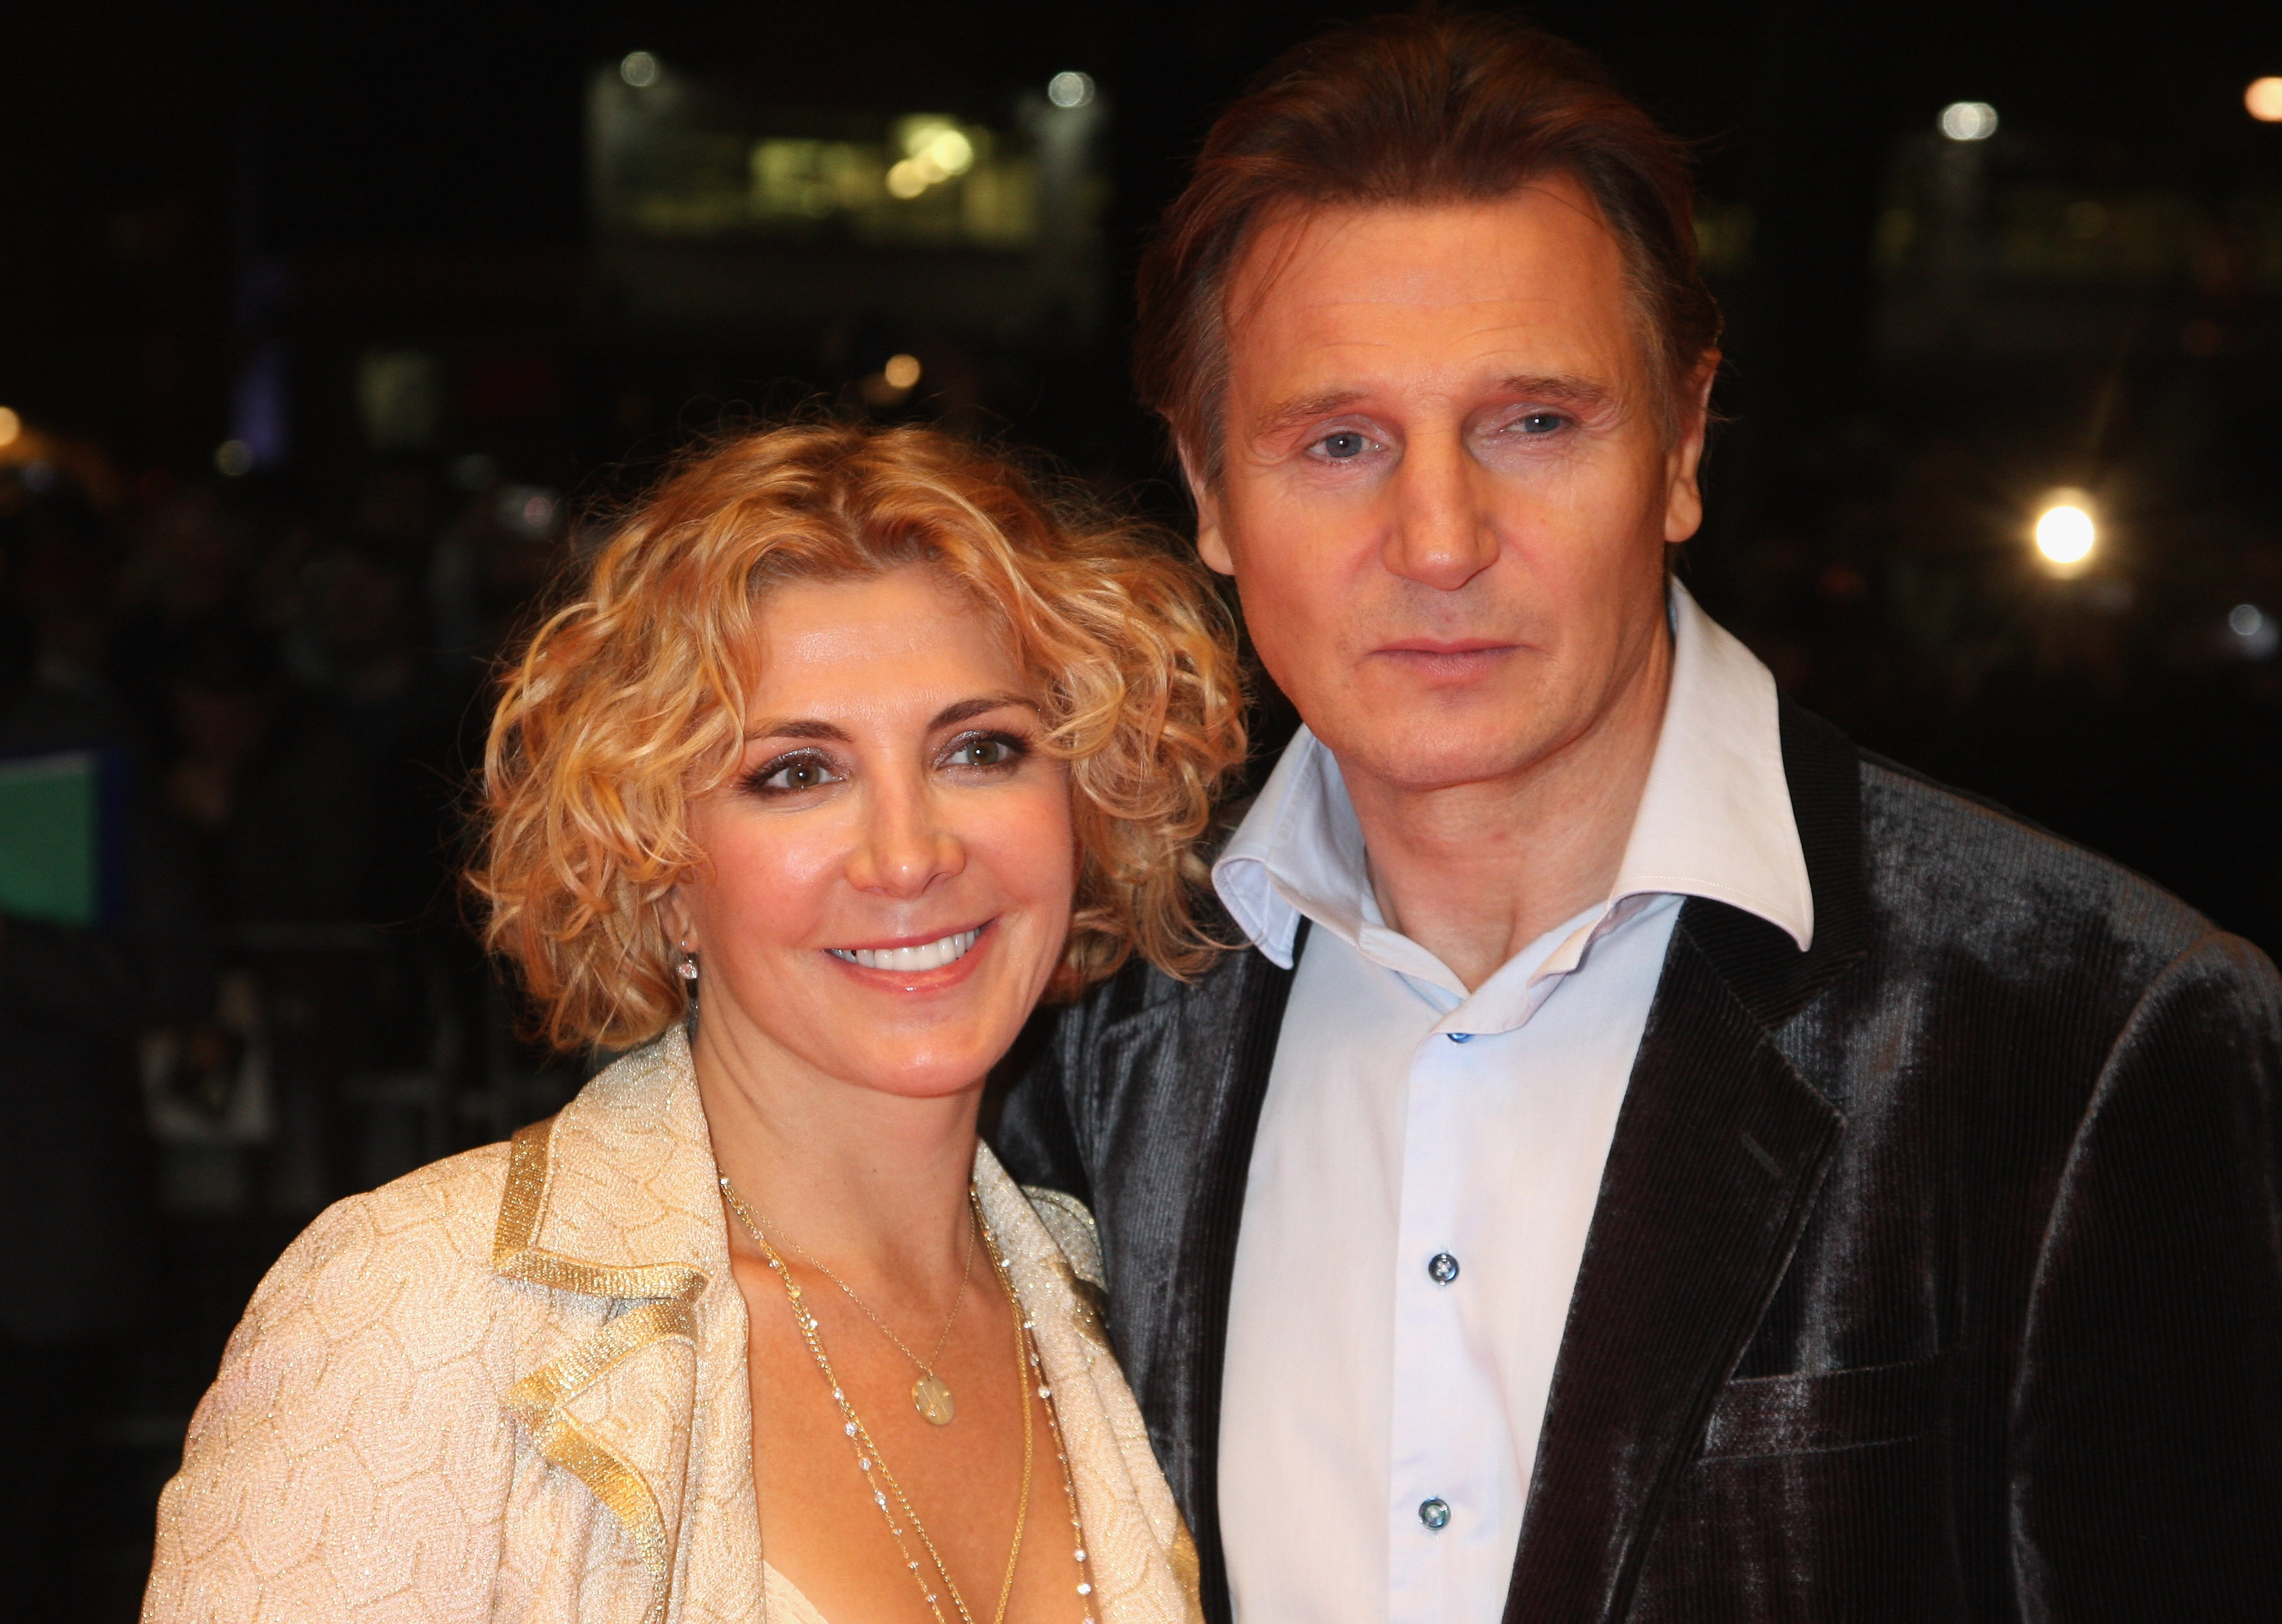 Liam Neeson and Natasha Richardson arrive at the BFI 52 London Film Festival: 'The Other Man' Premiere at the Odeon West End on October 17, 2008 in London, England.